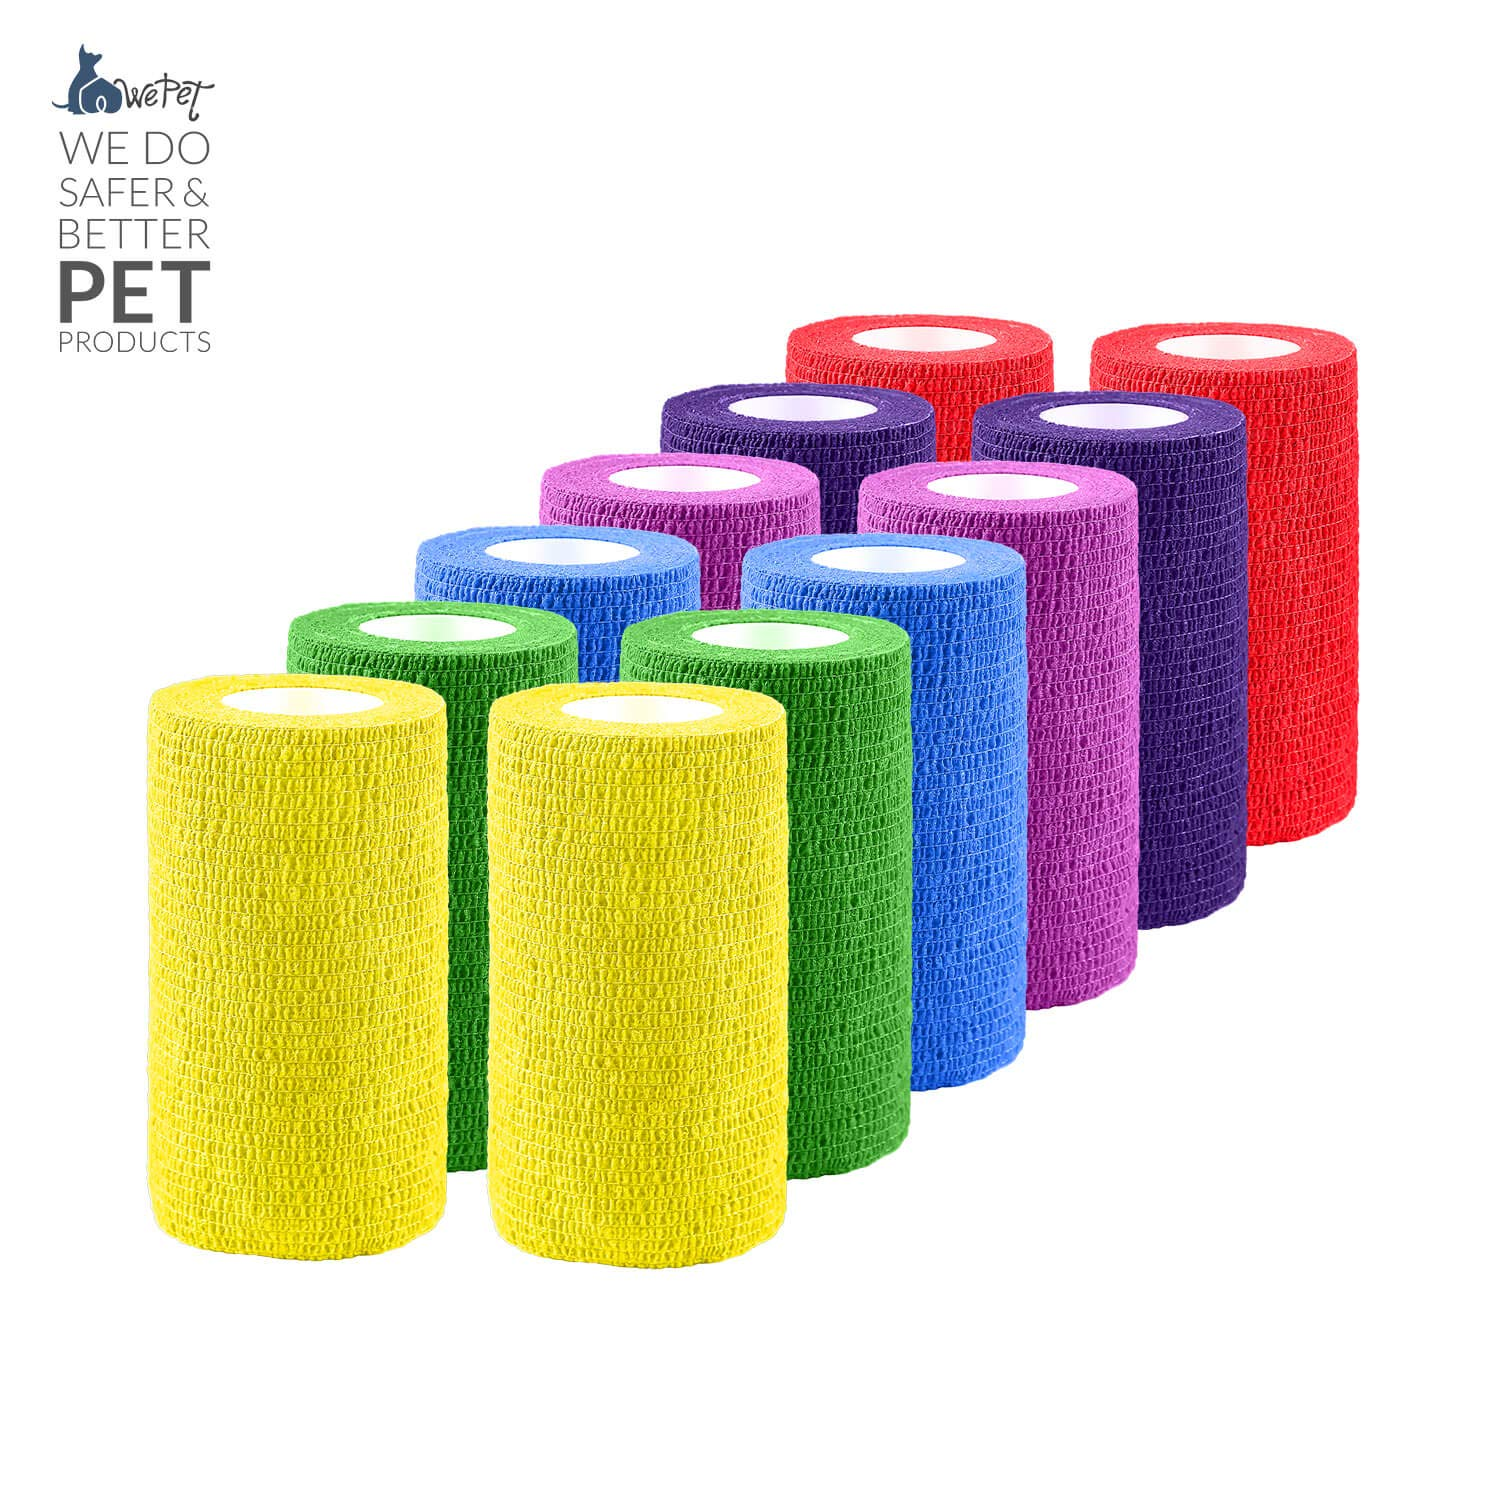 WePet Vet Wrap, Vet Tape Bulk Self-Adherent Gauze Rolls Non-Woven Cohesive Bandage First Aid for Dogs Cats Horses Birds Animals Strong Sports Tape for Wrist Healing Ankle Sprain & Swelling 4 Inch x 12 by WePet